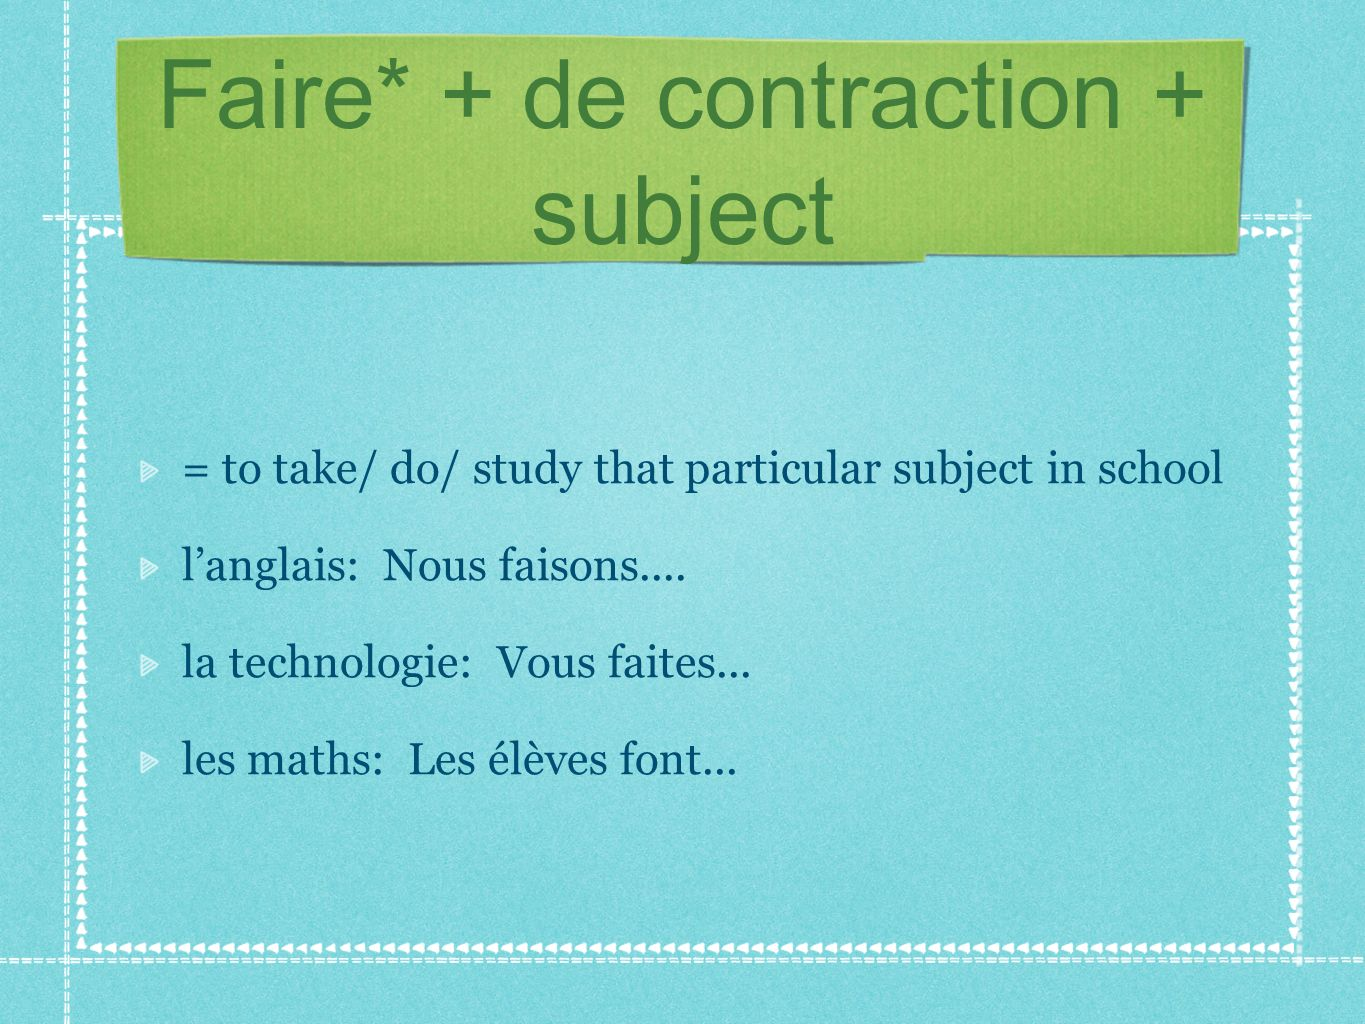 Faire* + de contraction + subject = to take/ do/ study that particular subject in school langlais: Nous faisons....